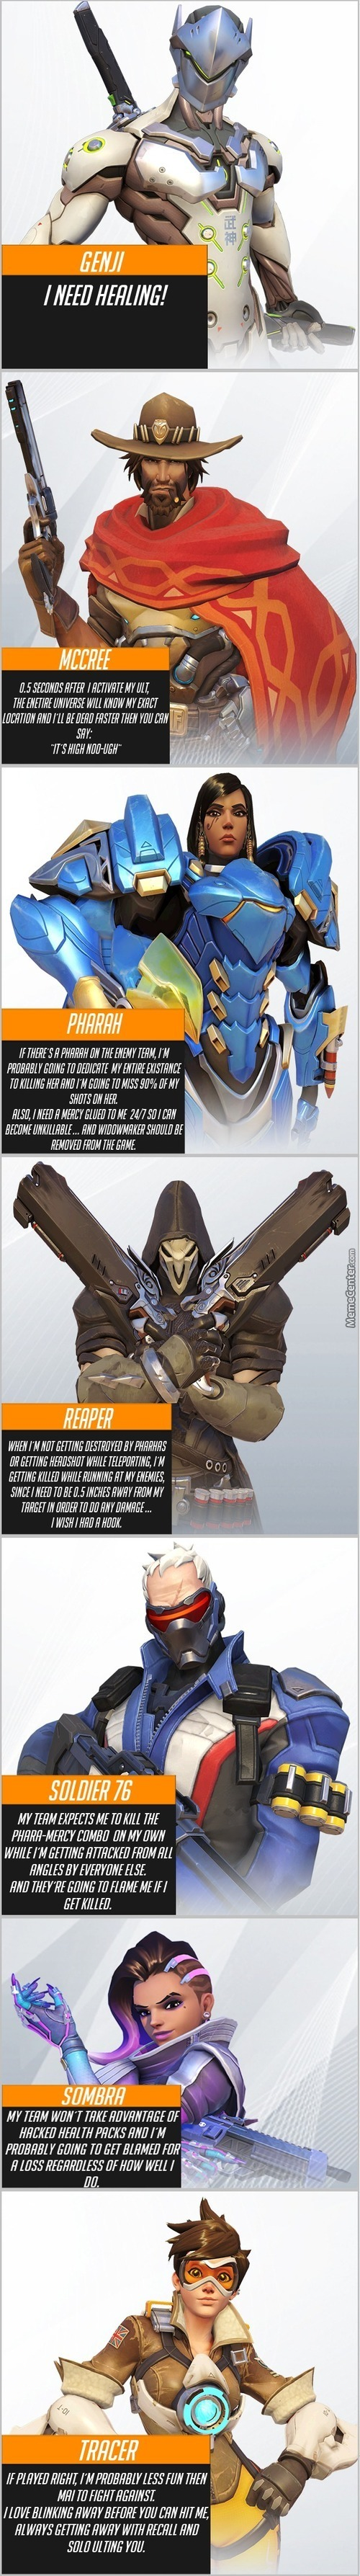 The Ranked Overwatch Experience: Offense